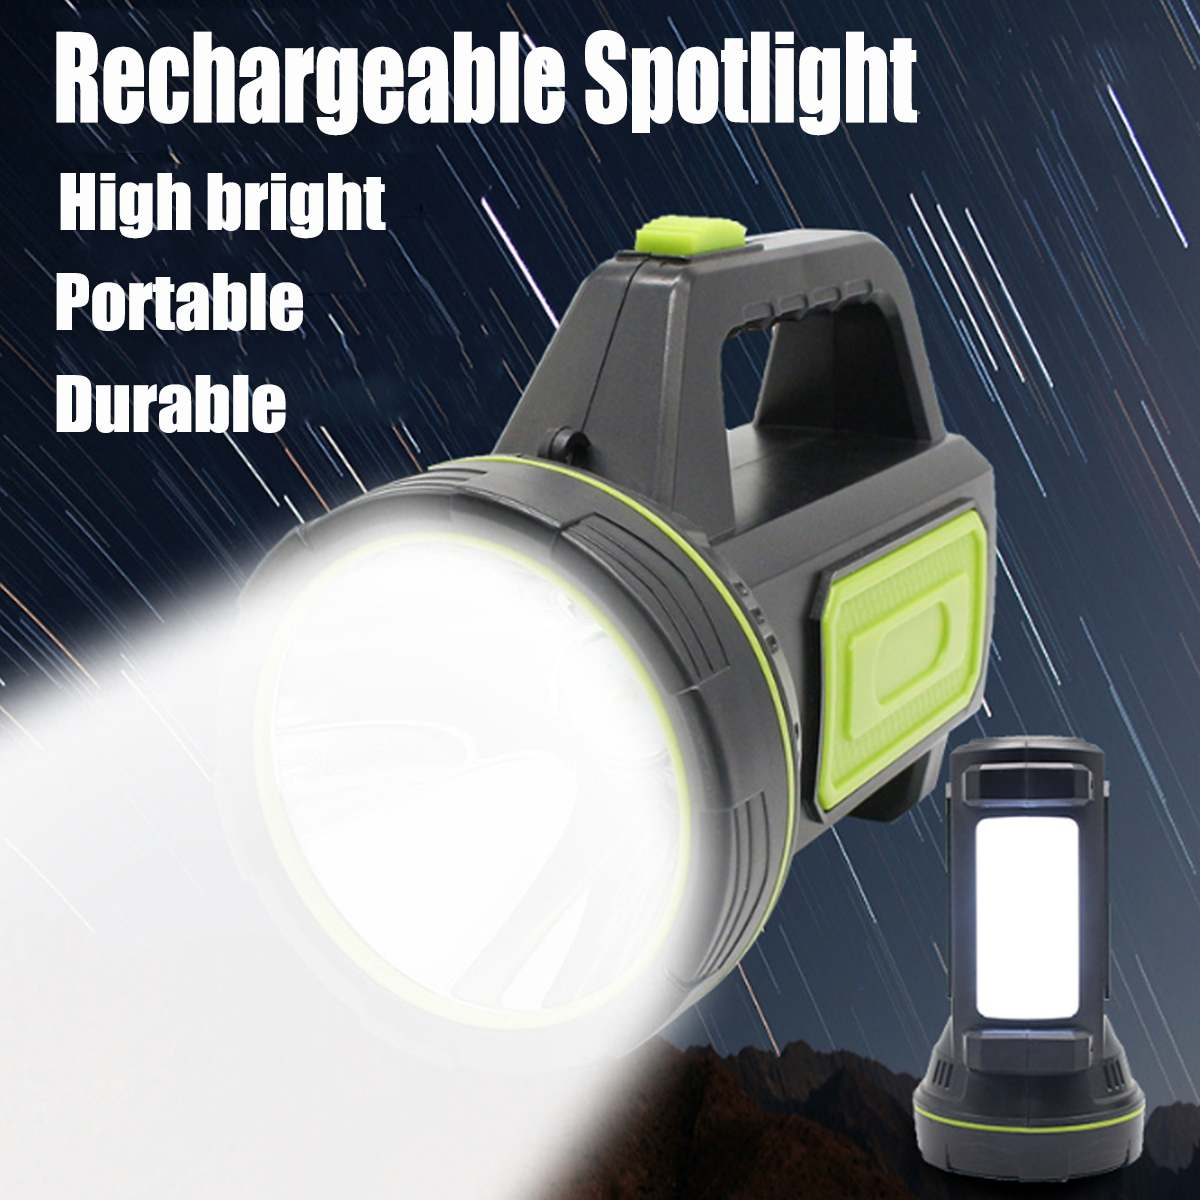 United Powerful Led Flashlight Rechargeable 10w Eu/u.s Lights & Lighting Regulations Outdoor Portable Spot Flashlight Waterproof Handy Hand Flashlight Led Flashlights